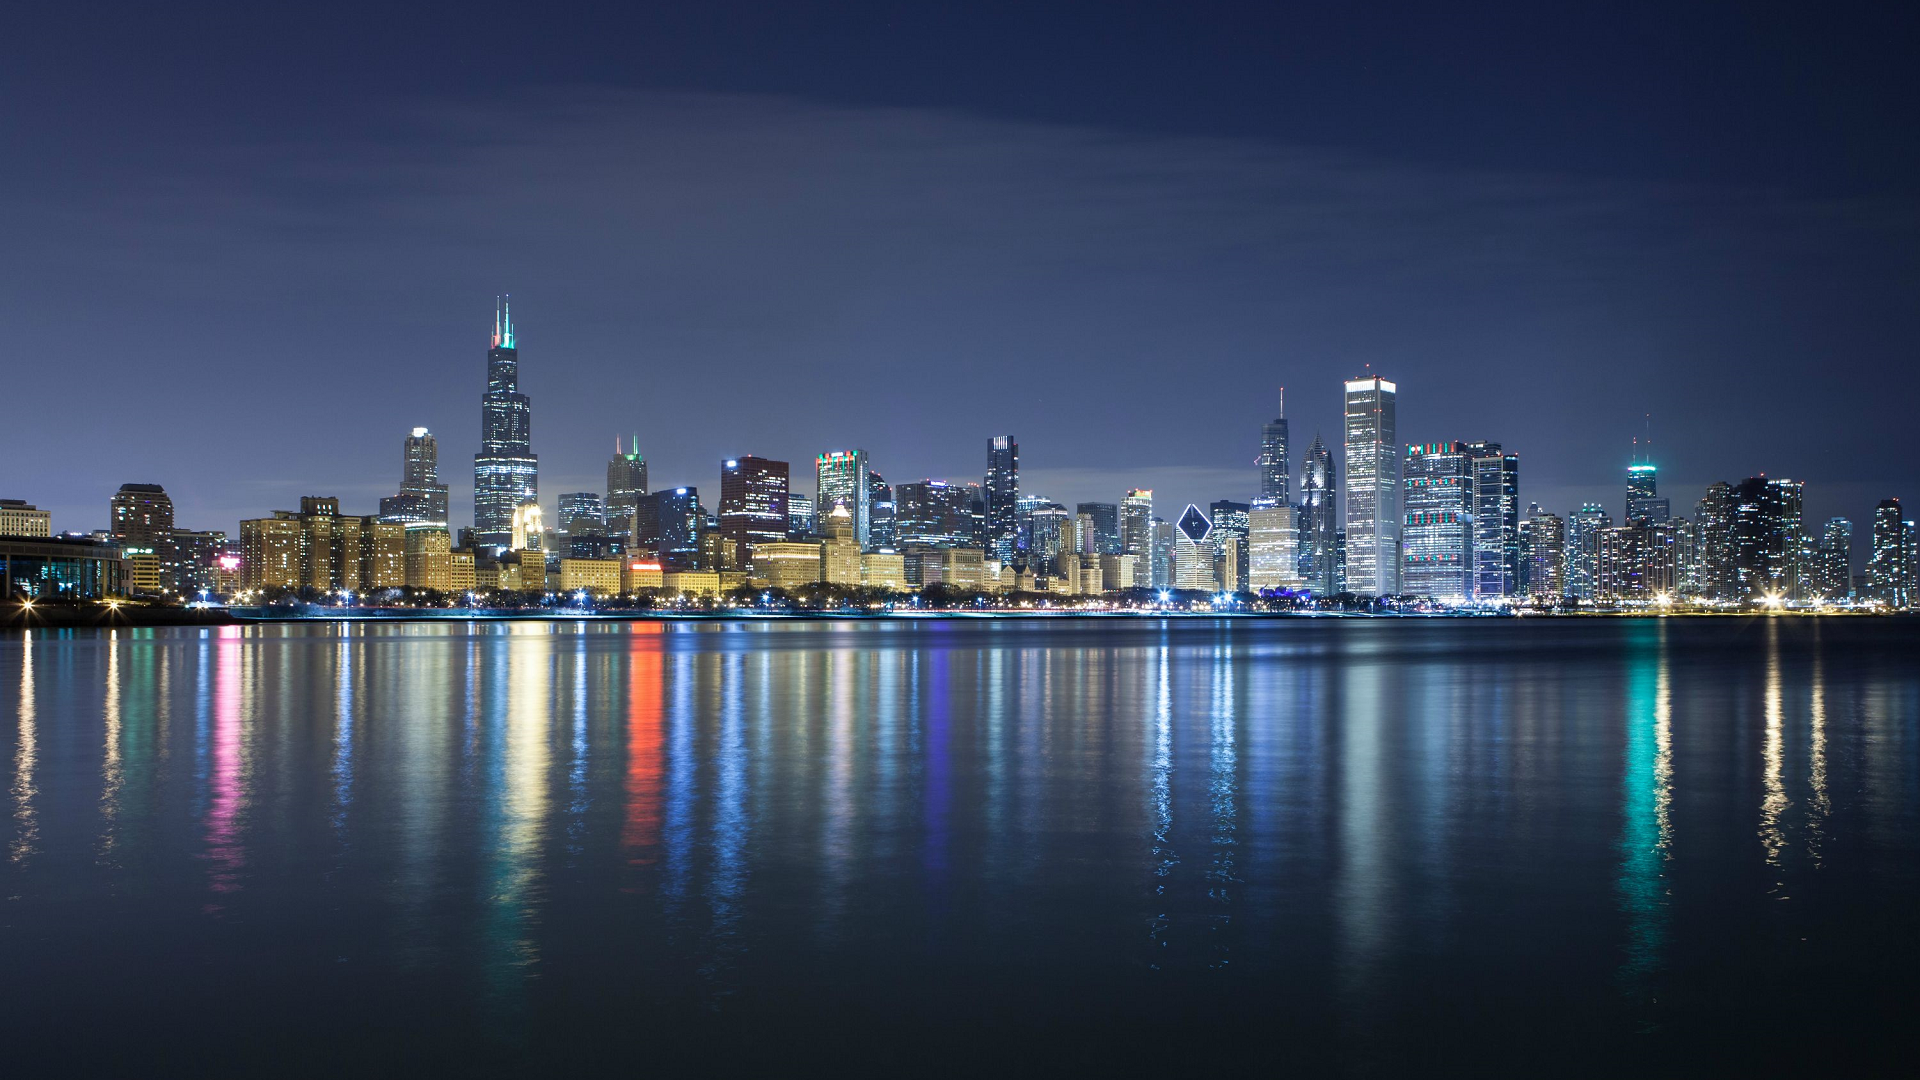 Chicago Skyline Wallpaper Download Free HD Wallpapers